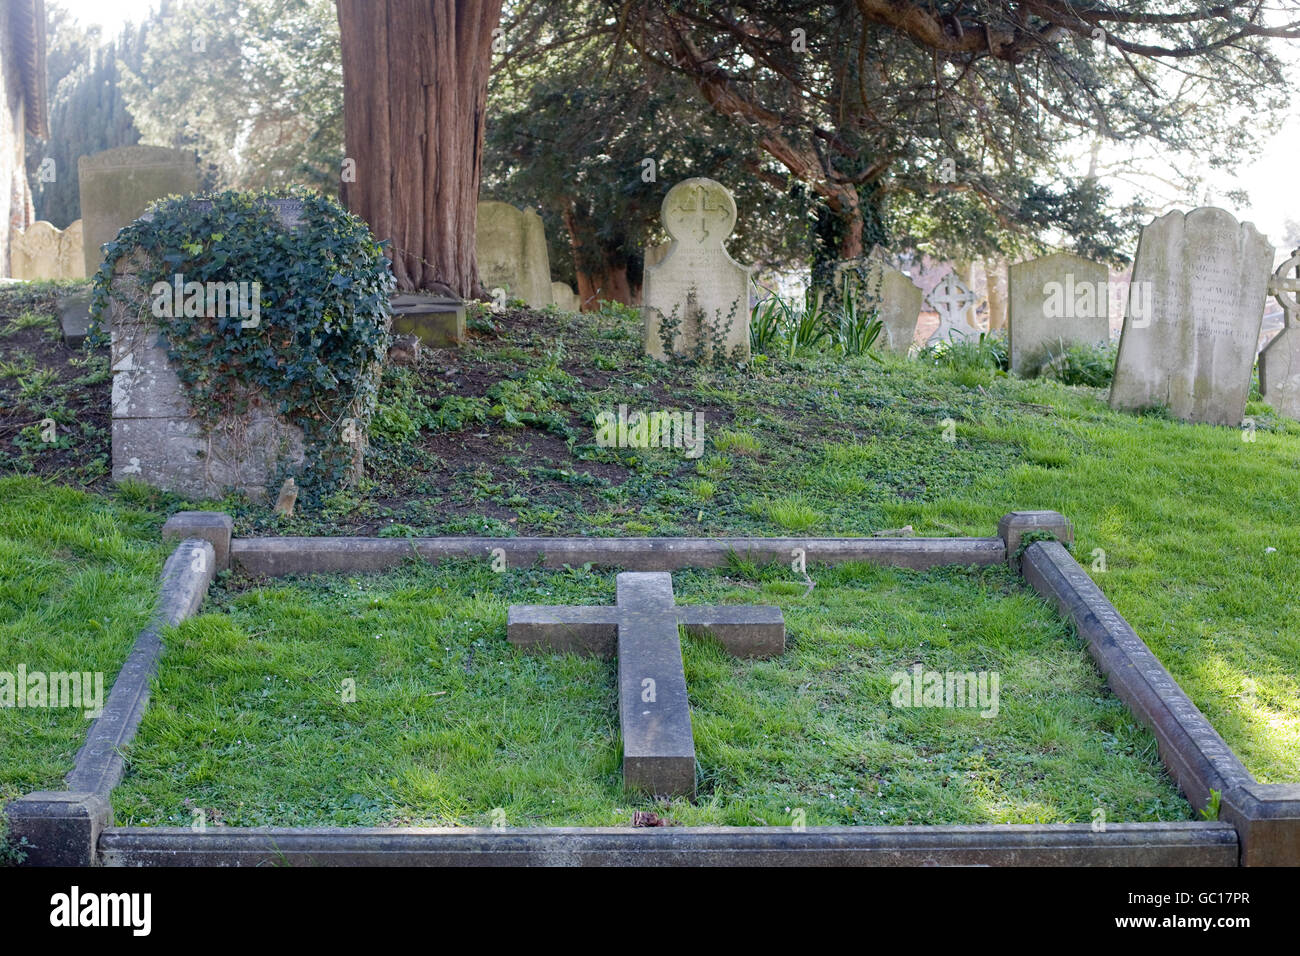 stone cross on a grave - Stock Image